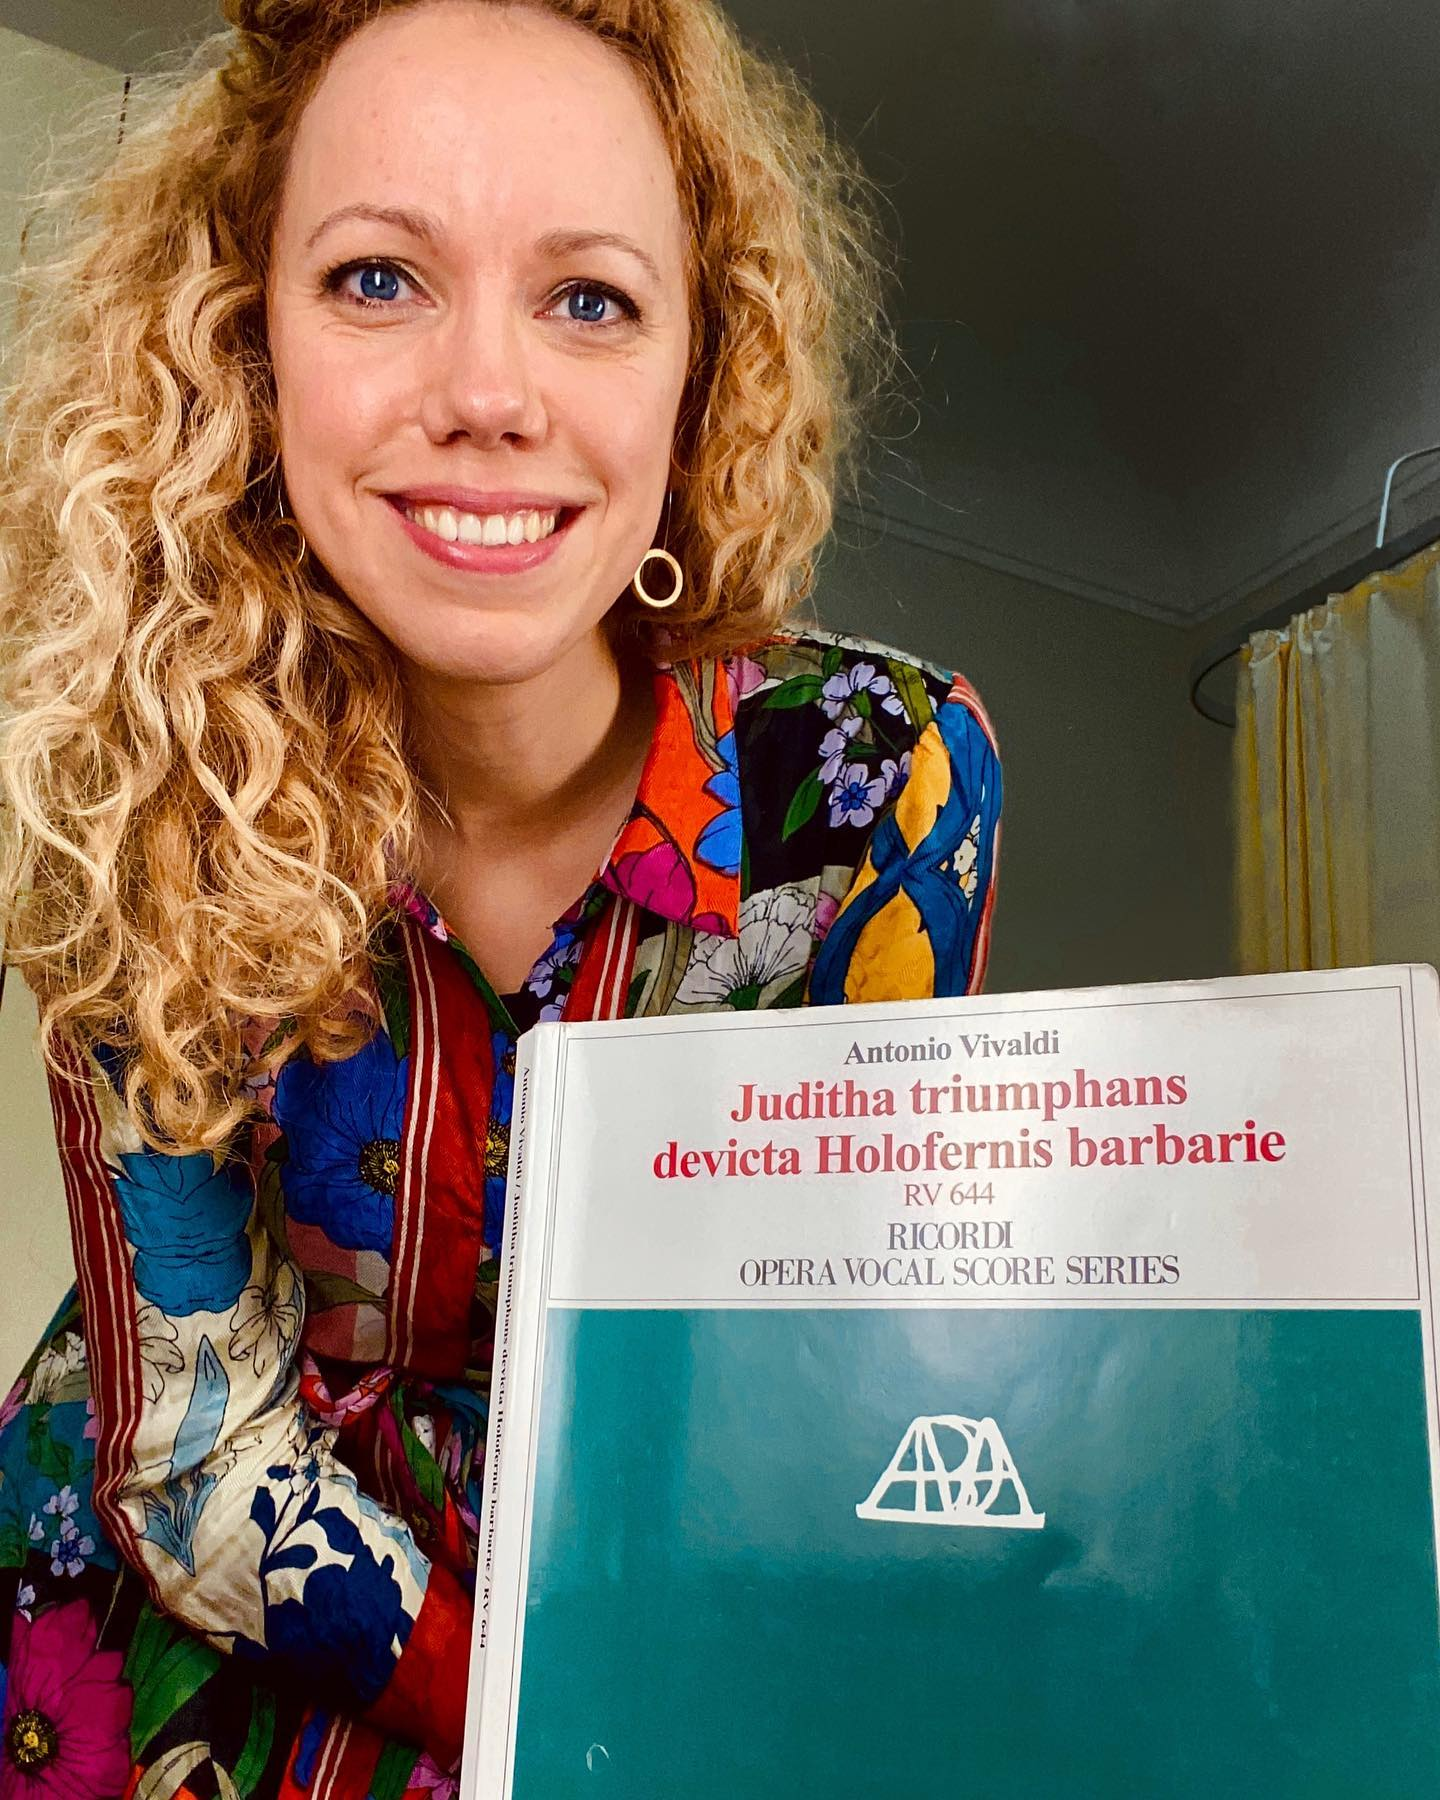 Soon #judithatriumphans rehearsals start and I am learning this beautiful music by just posing with it - it's the Instastyle ! But soon it will be in my head, I am pretty confident - maybe just 20 more pics to shoot! #instagold #music #vivaldi #4jahreszeitenkenntjeder #barock #ornaments #picture #blondehair #nicedress #derhy @operstuttgart #ricordi #latin